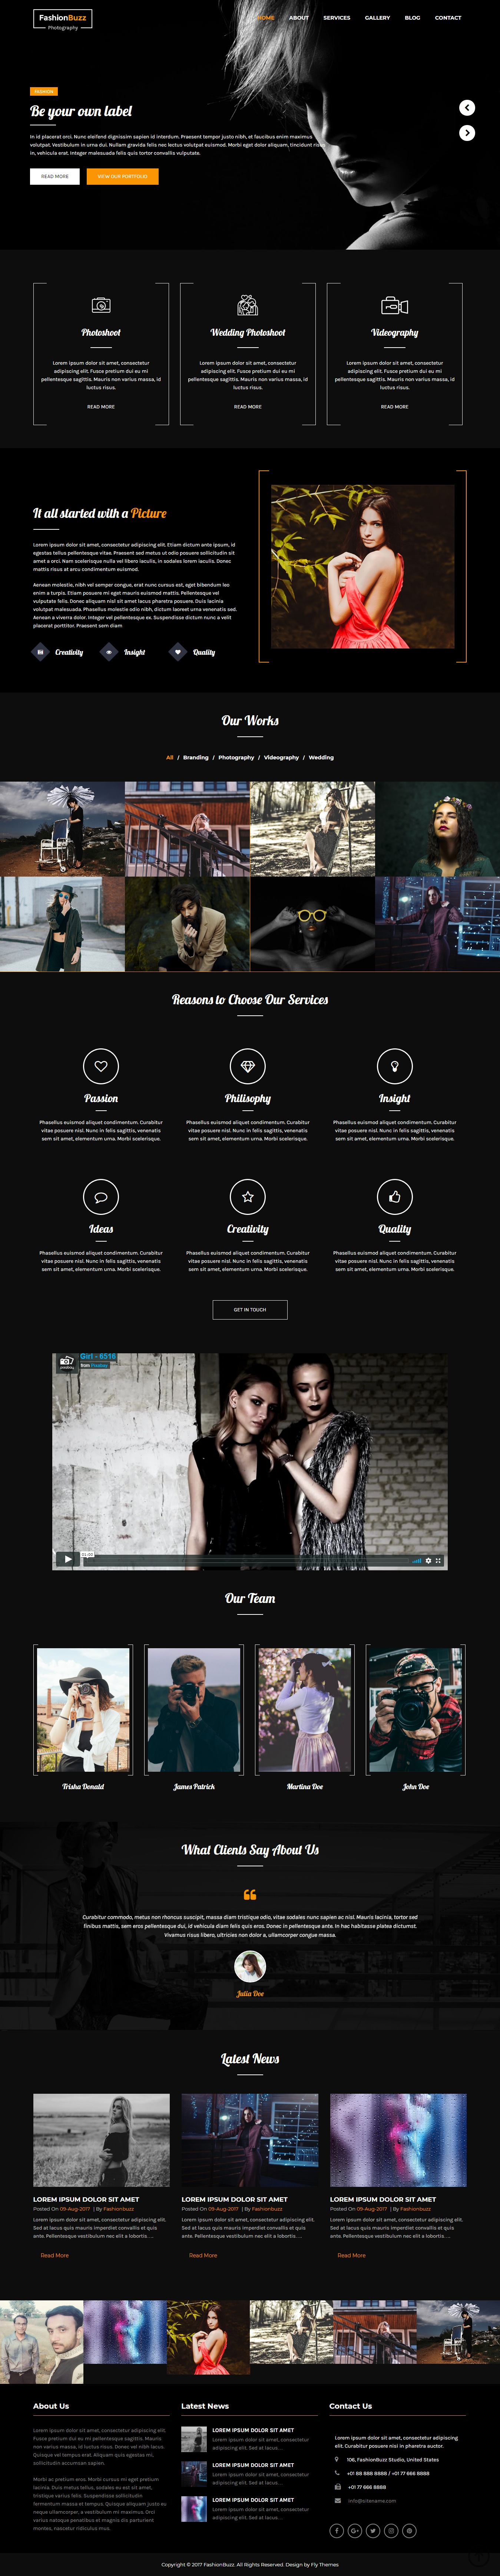 FashionBuzz - Best Free Fashion WordPress Theme